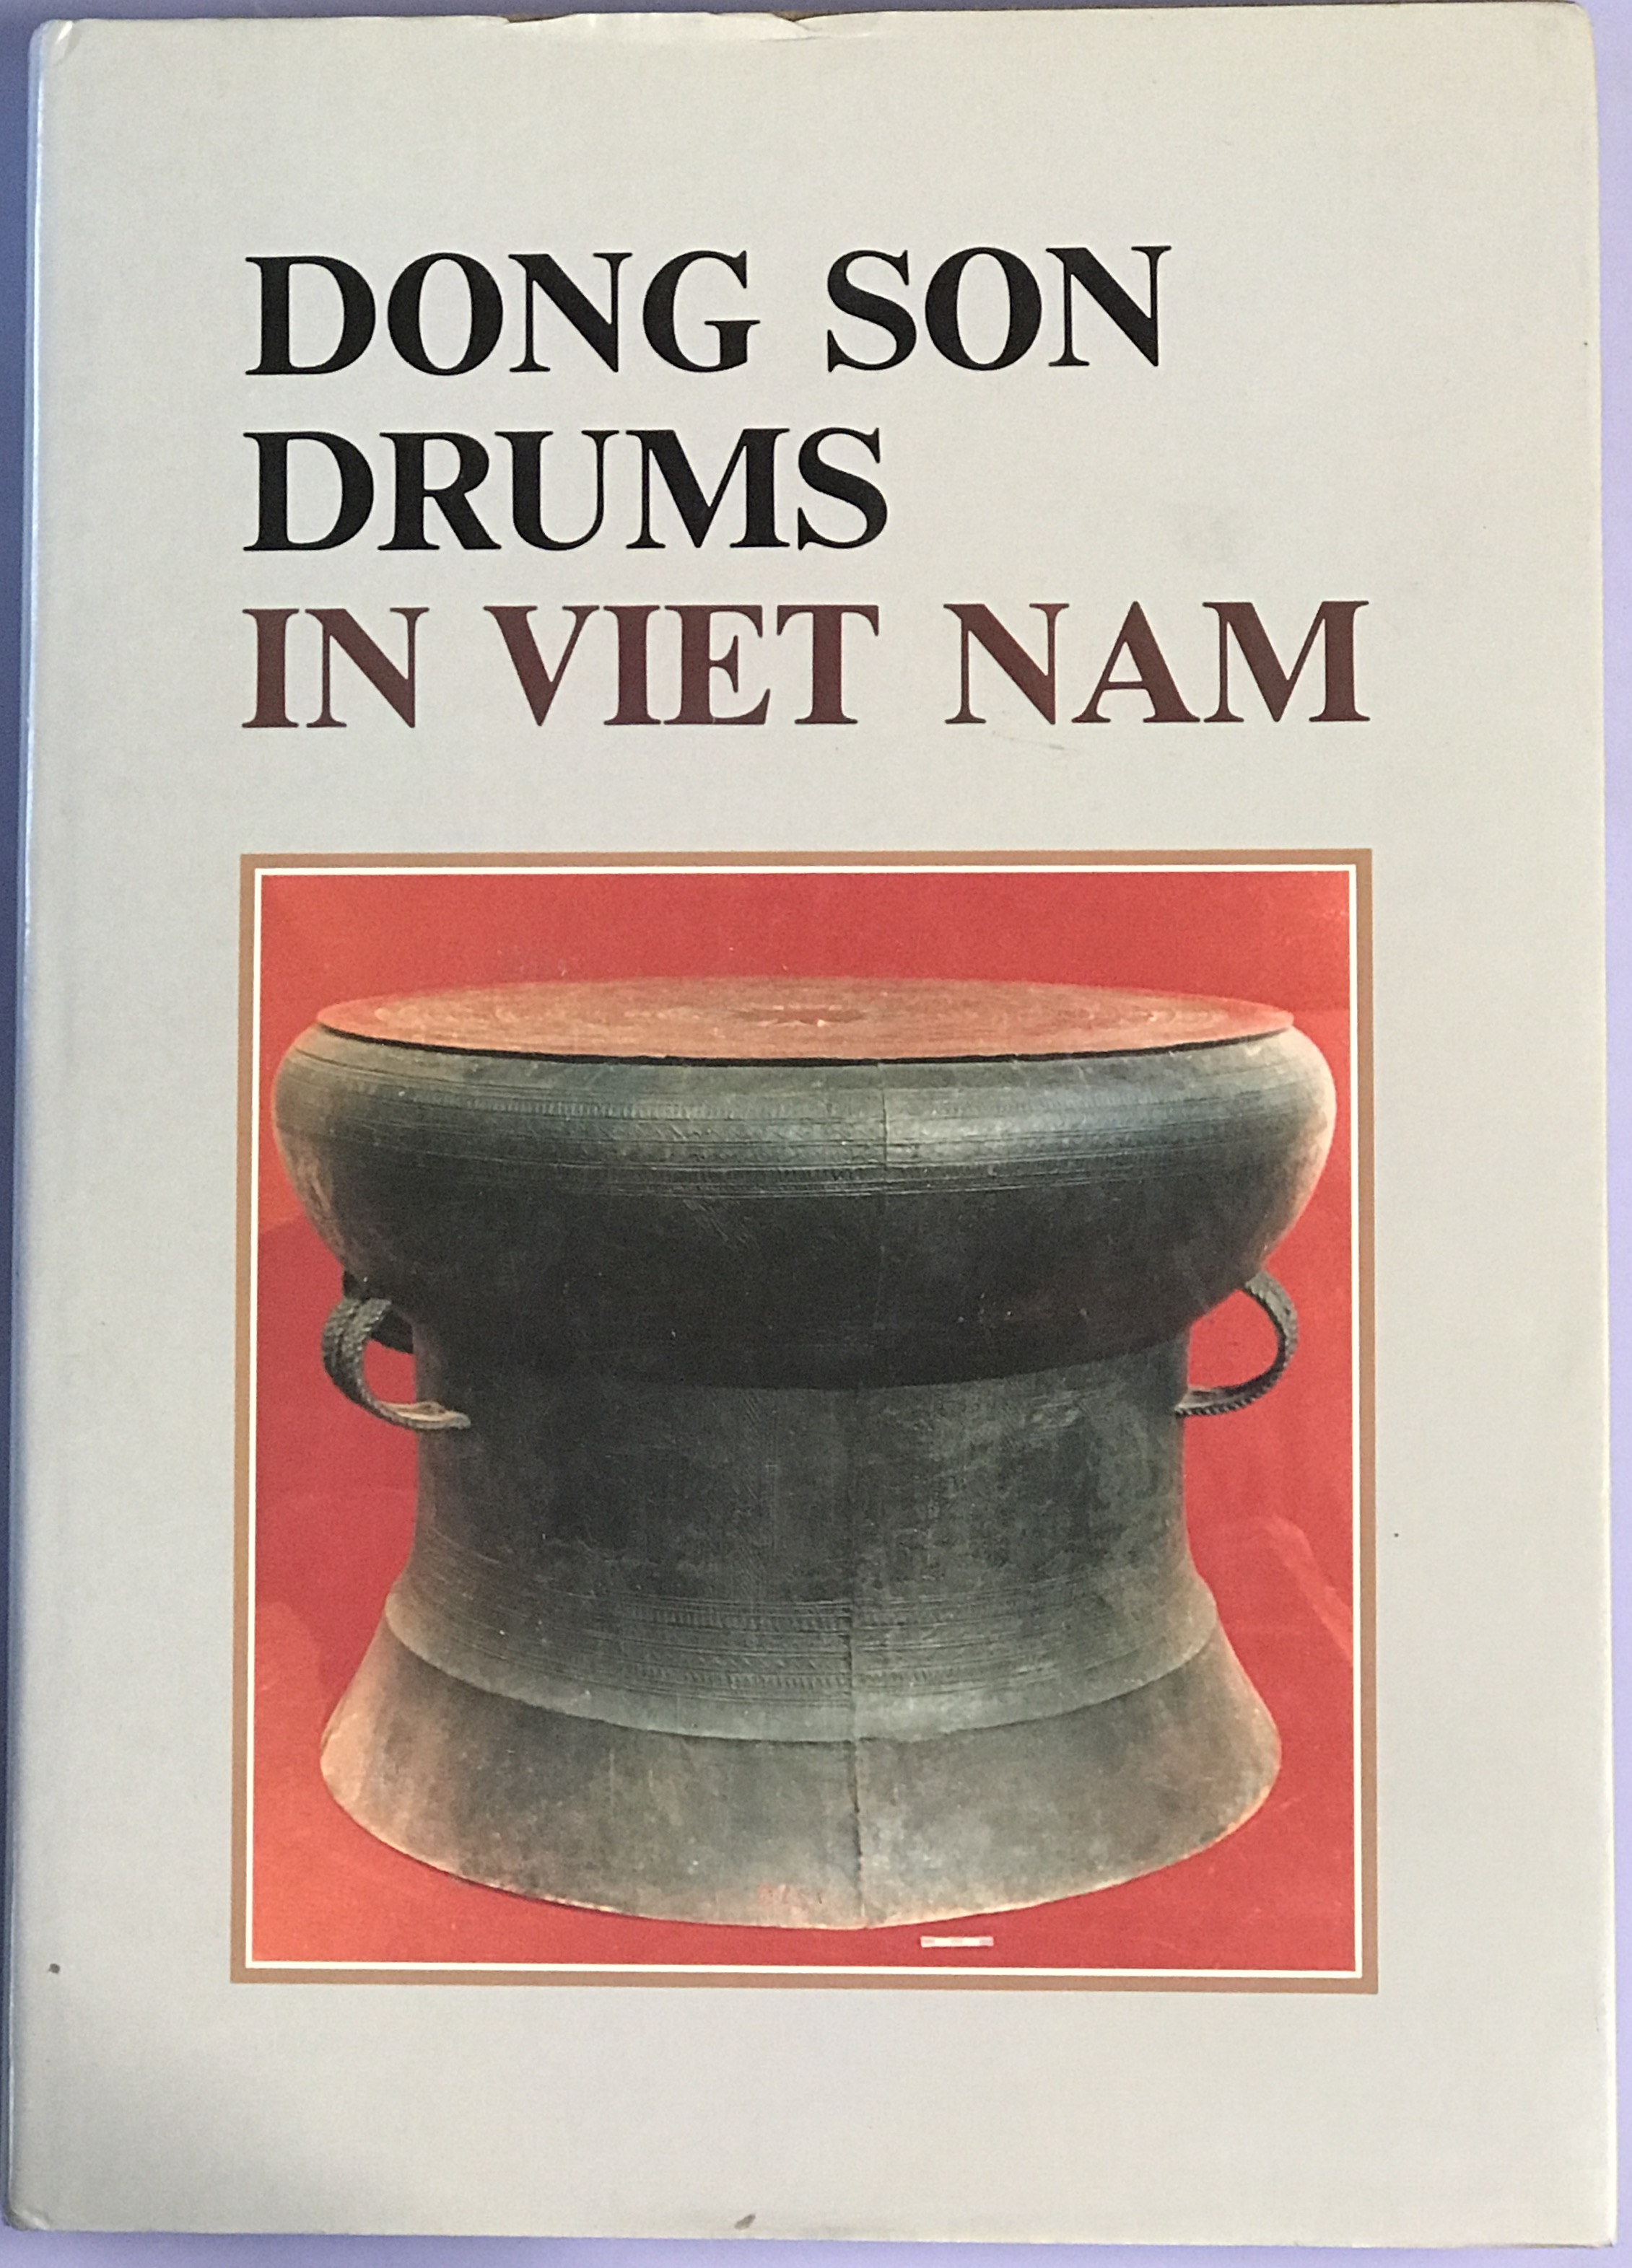 B0004B77MKYRD: Bookshop: Dong Son Drums in Viet Nam